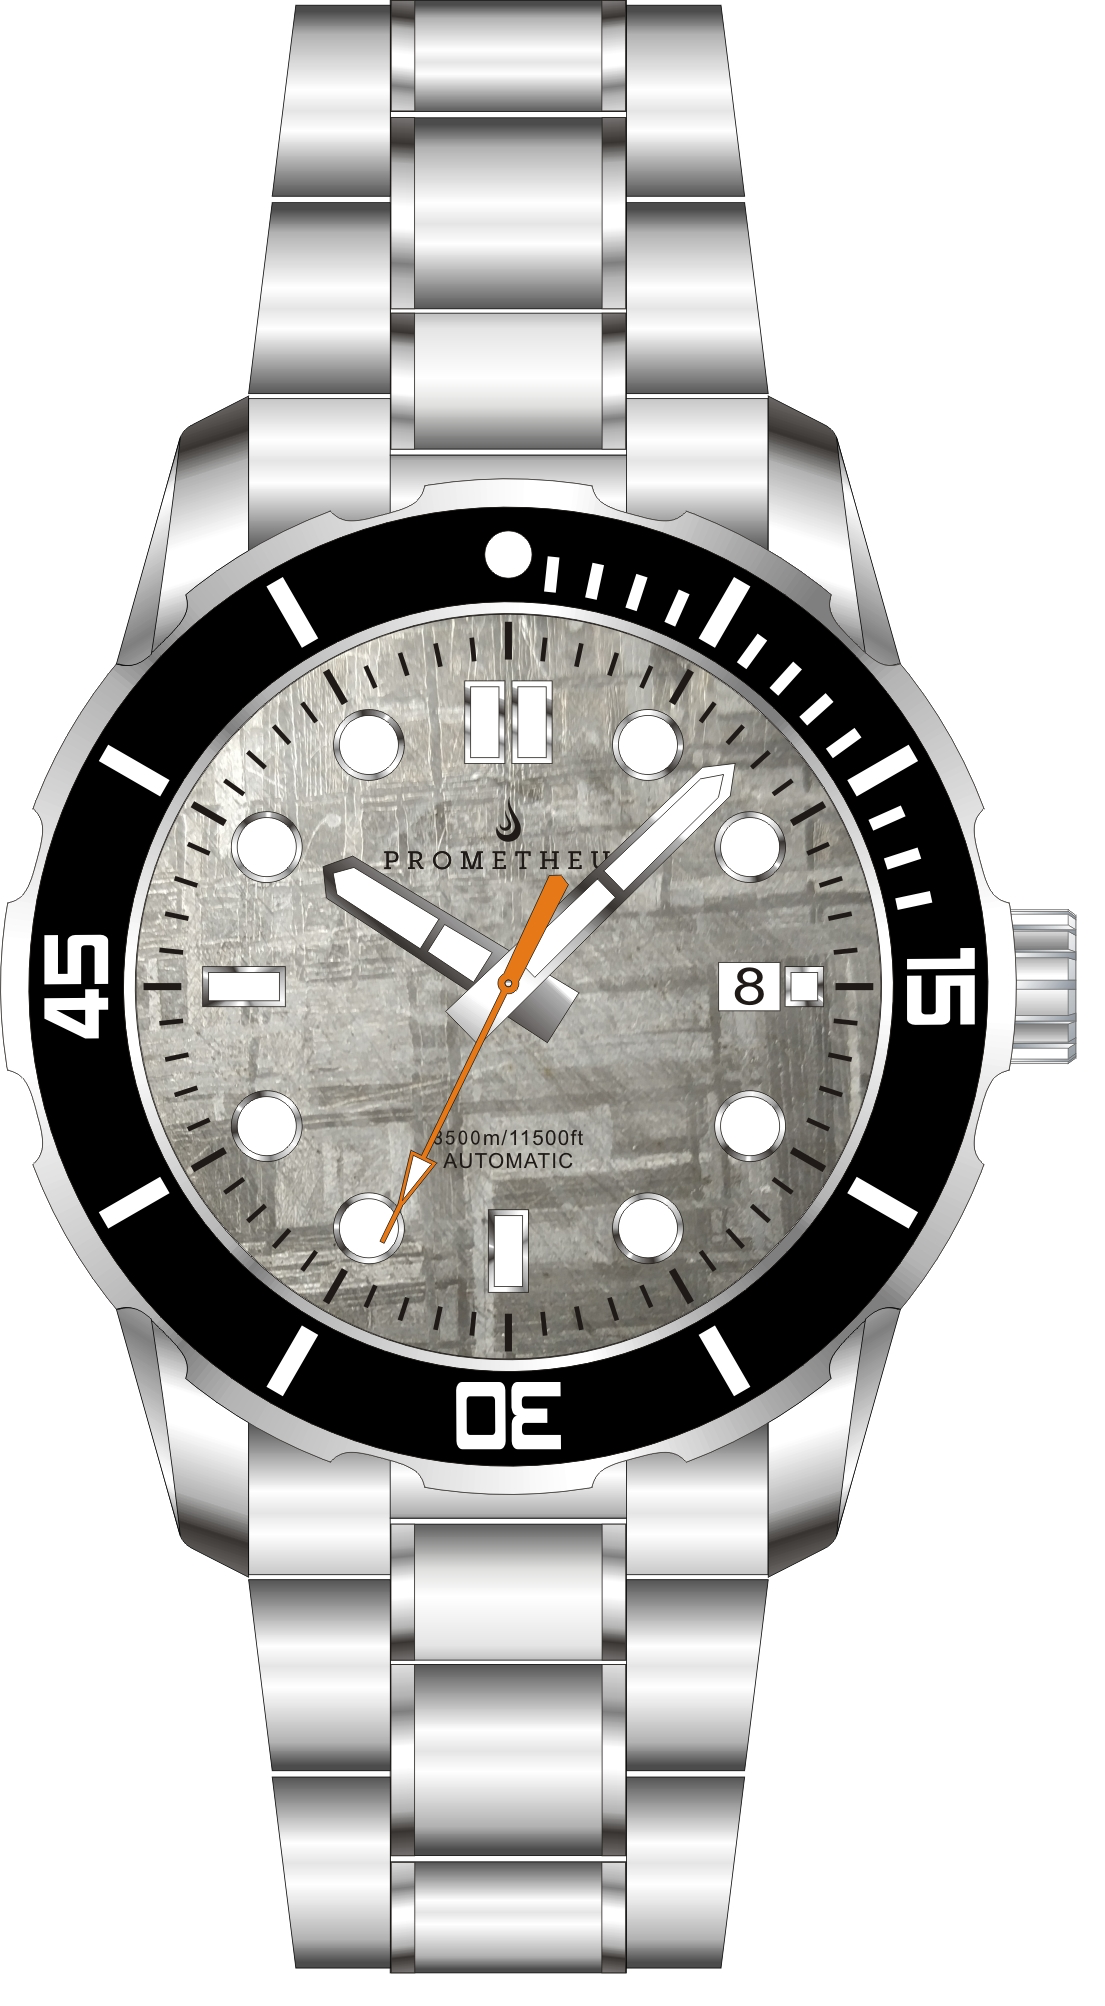 Pre-Order Prometheus Poseidon Meteorite Dial Pencil Hands Orange Seconds Date 3500m Diver Watch Automatic Miyota 9015